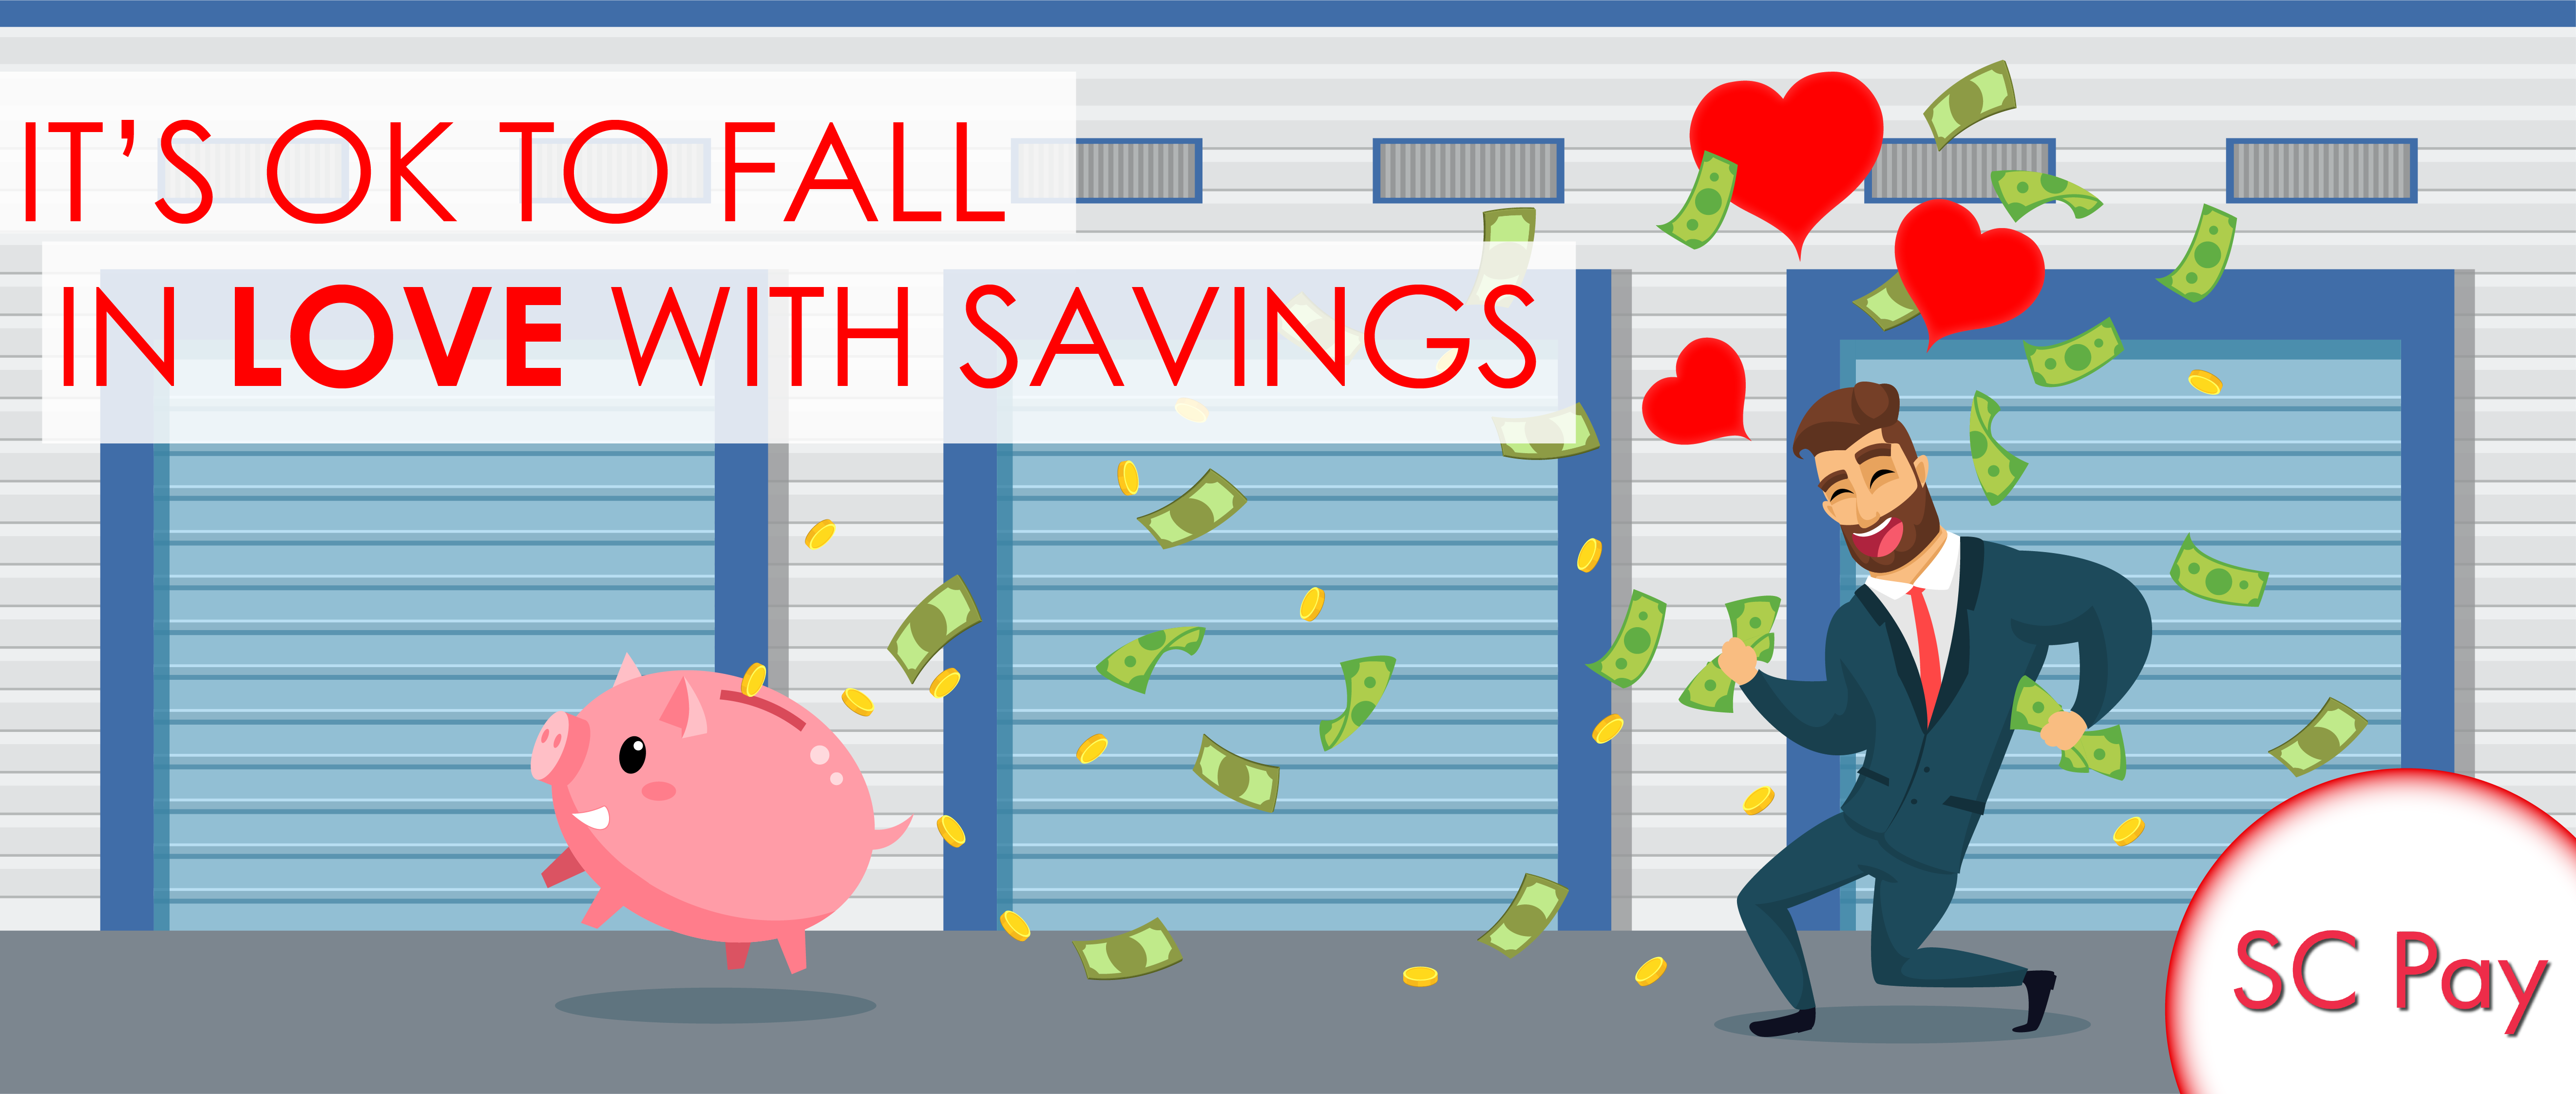 Fall in love with savings